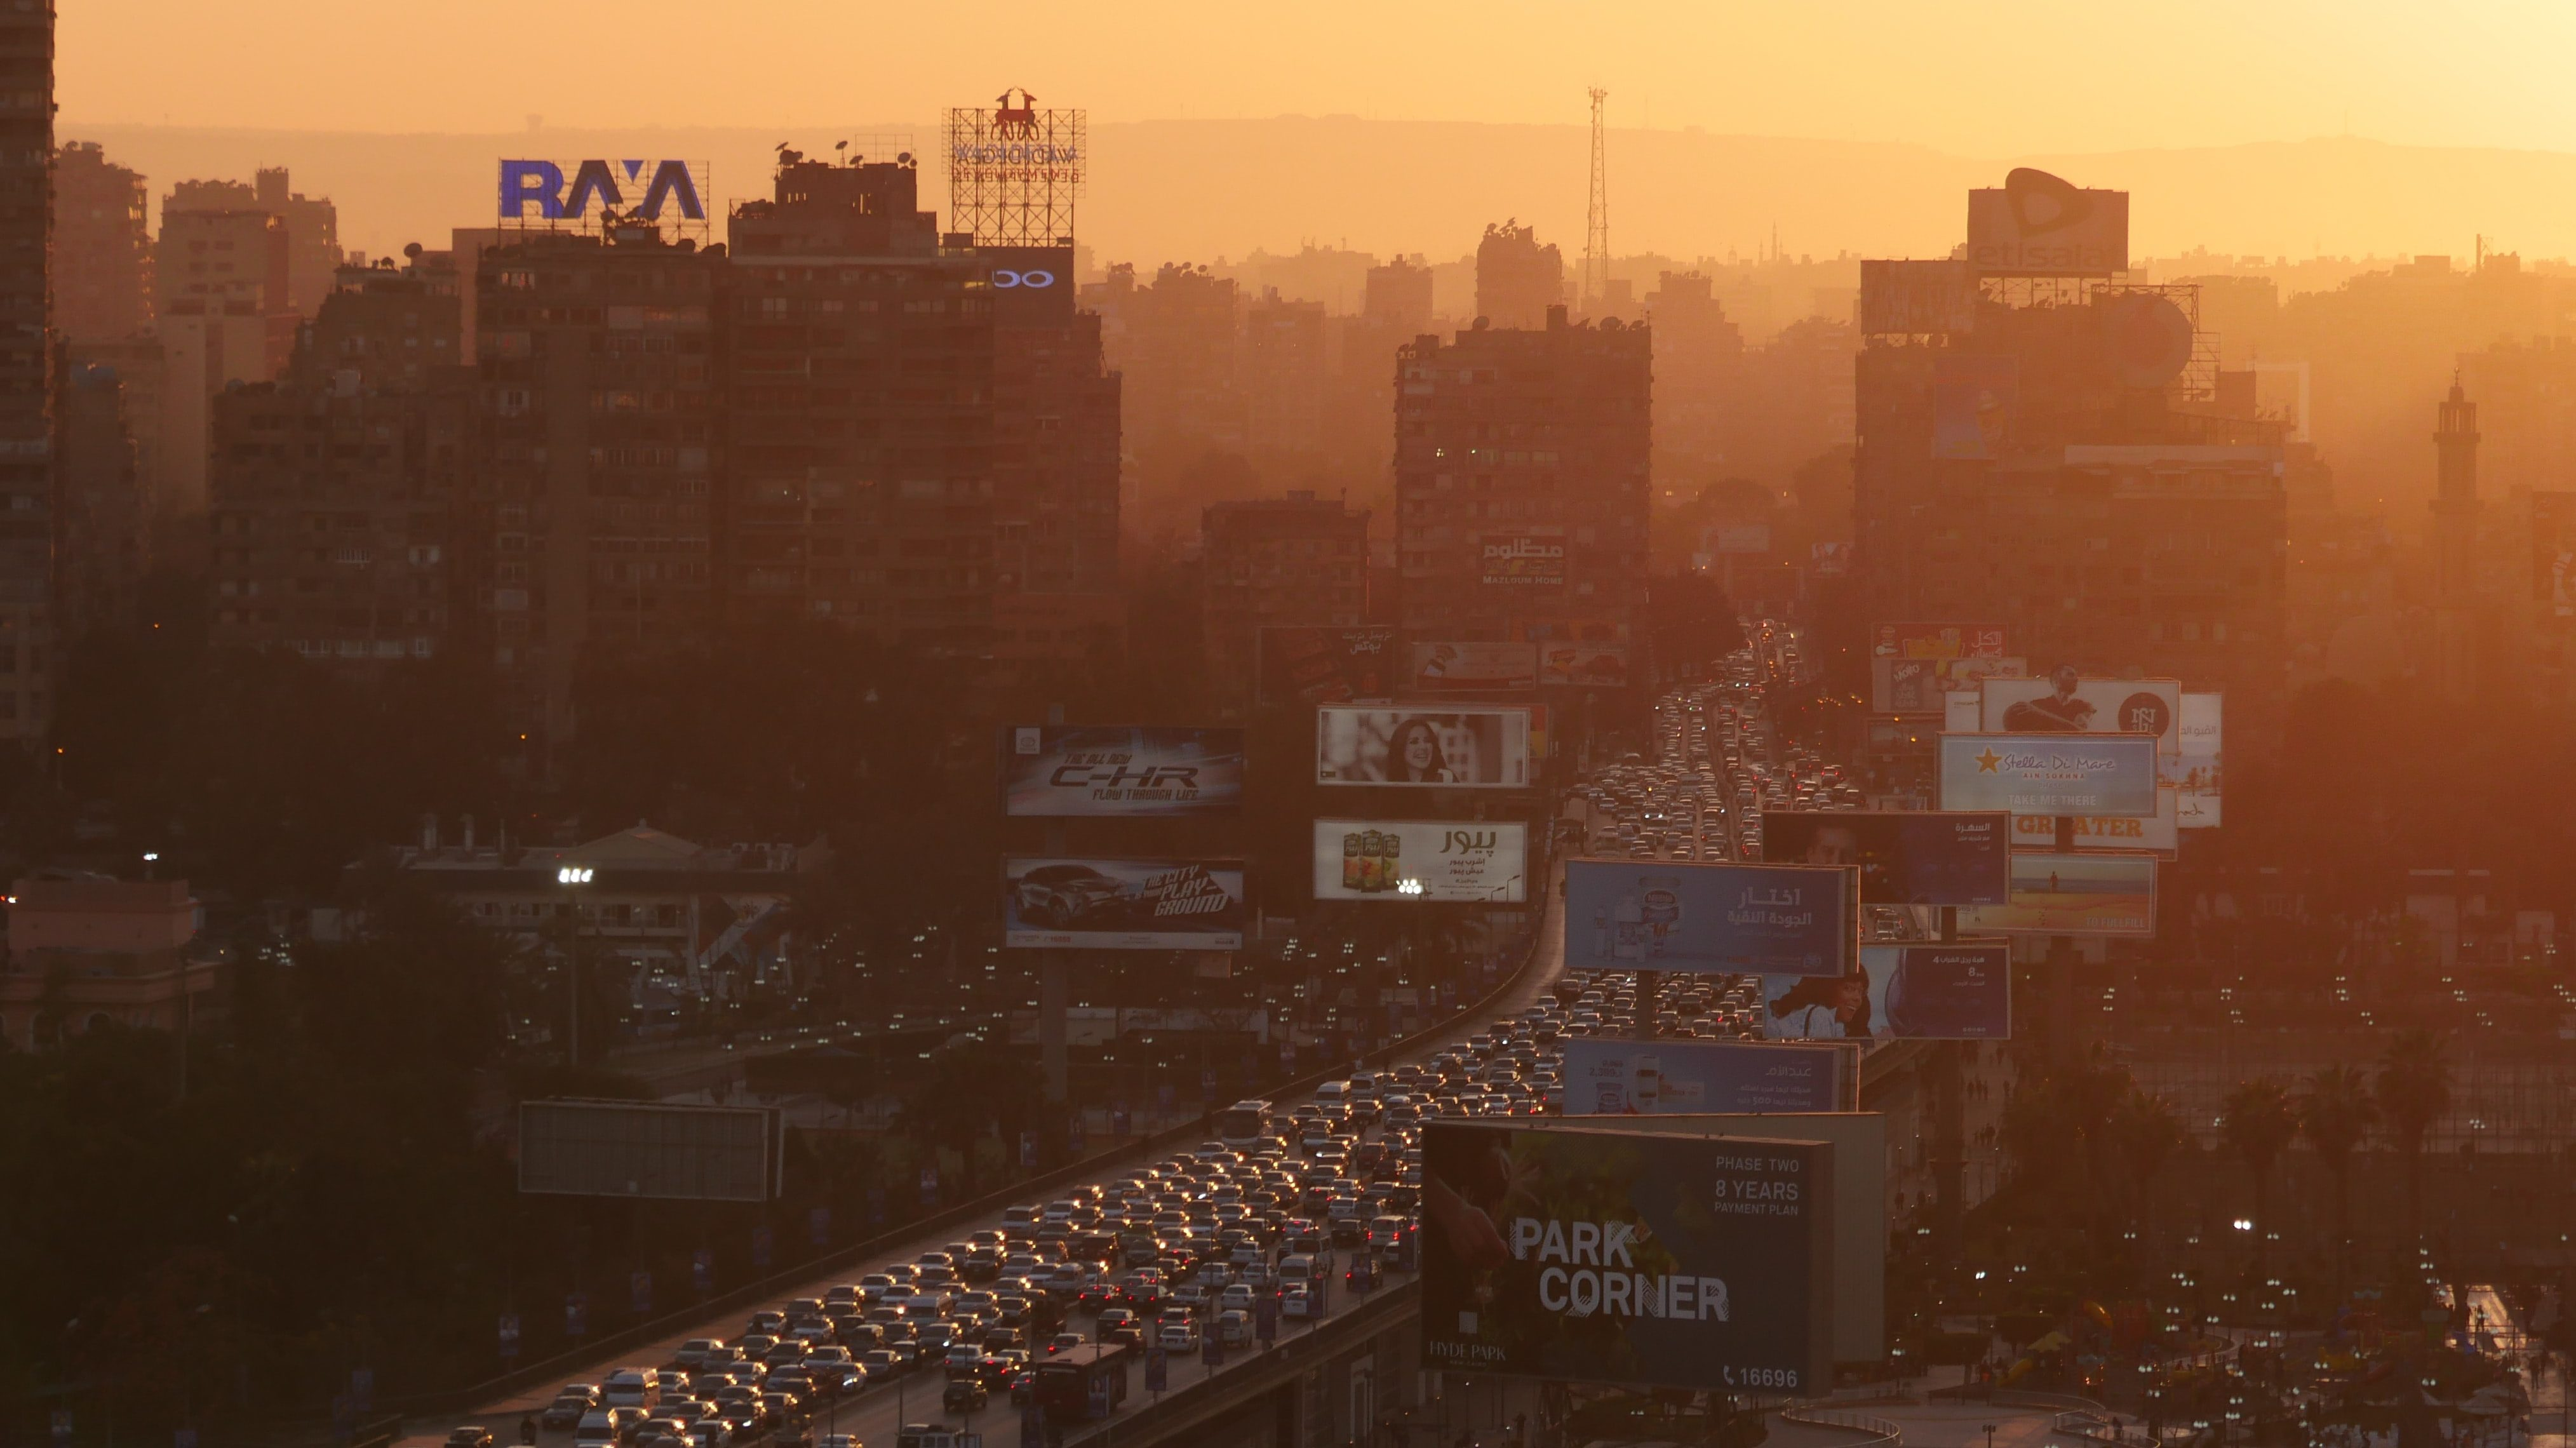 Image of an industrialized city with high motor-vehicle traffic, likely to have high levels of nitrogen dioxide and fine particles PM2,5